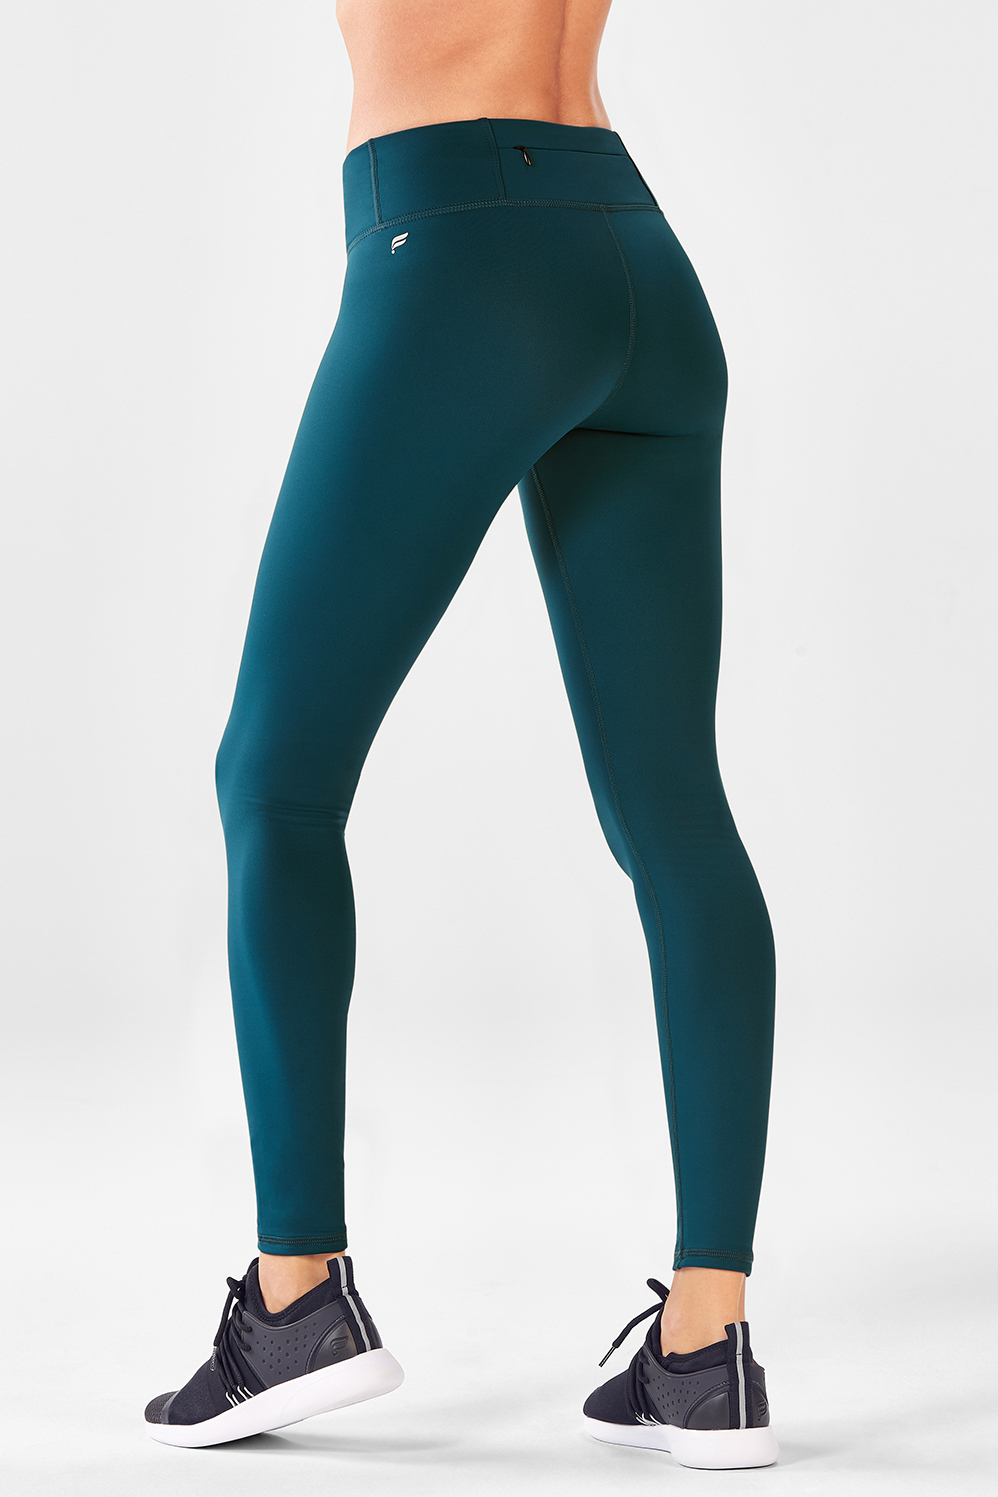 dda55470b97c80 Salar Solid Cold Weather Legging - Fabletics